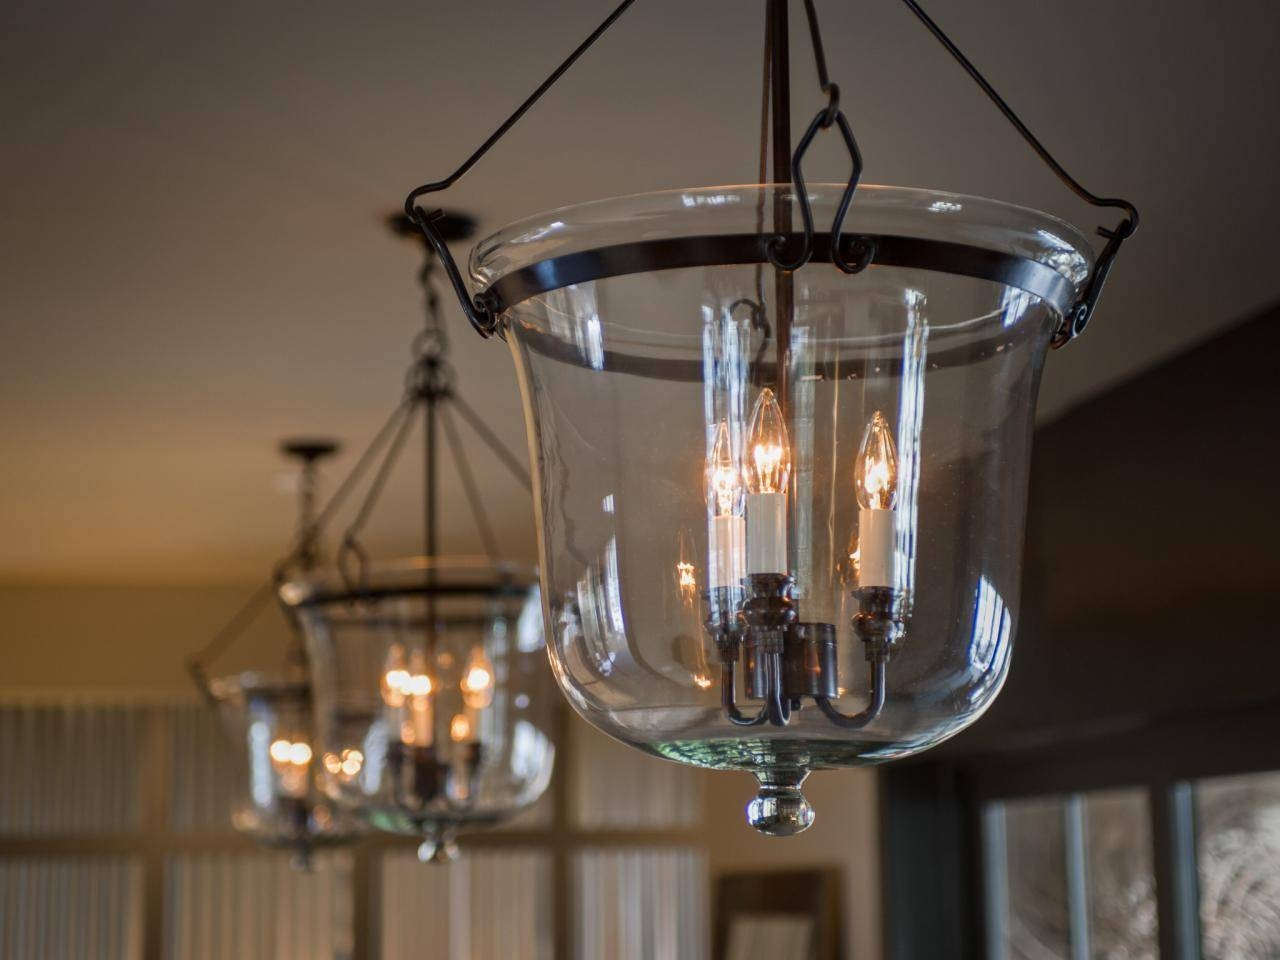 Lighting: 6 Light Brown Entryway Chandelier For Home Lighting Idea in Carriage Pendant Lights (Image 6 of 15)